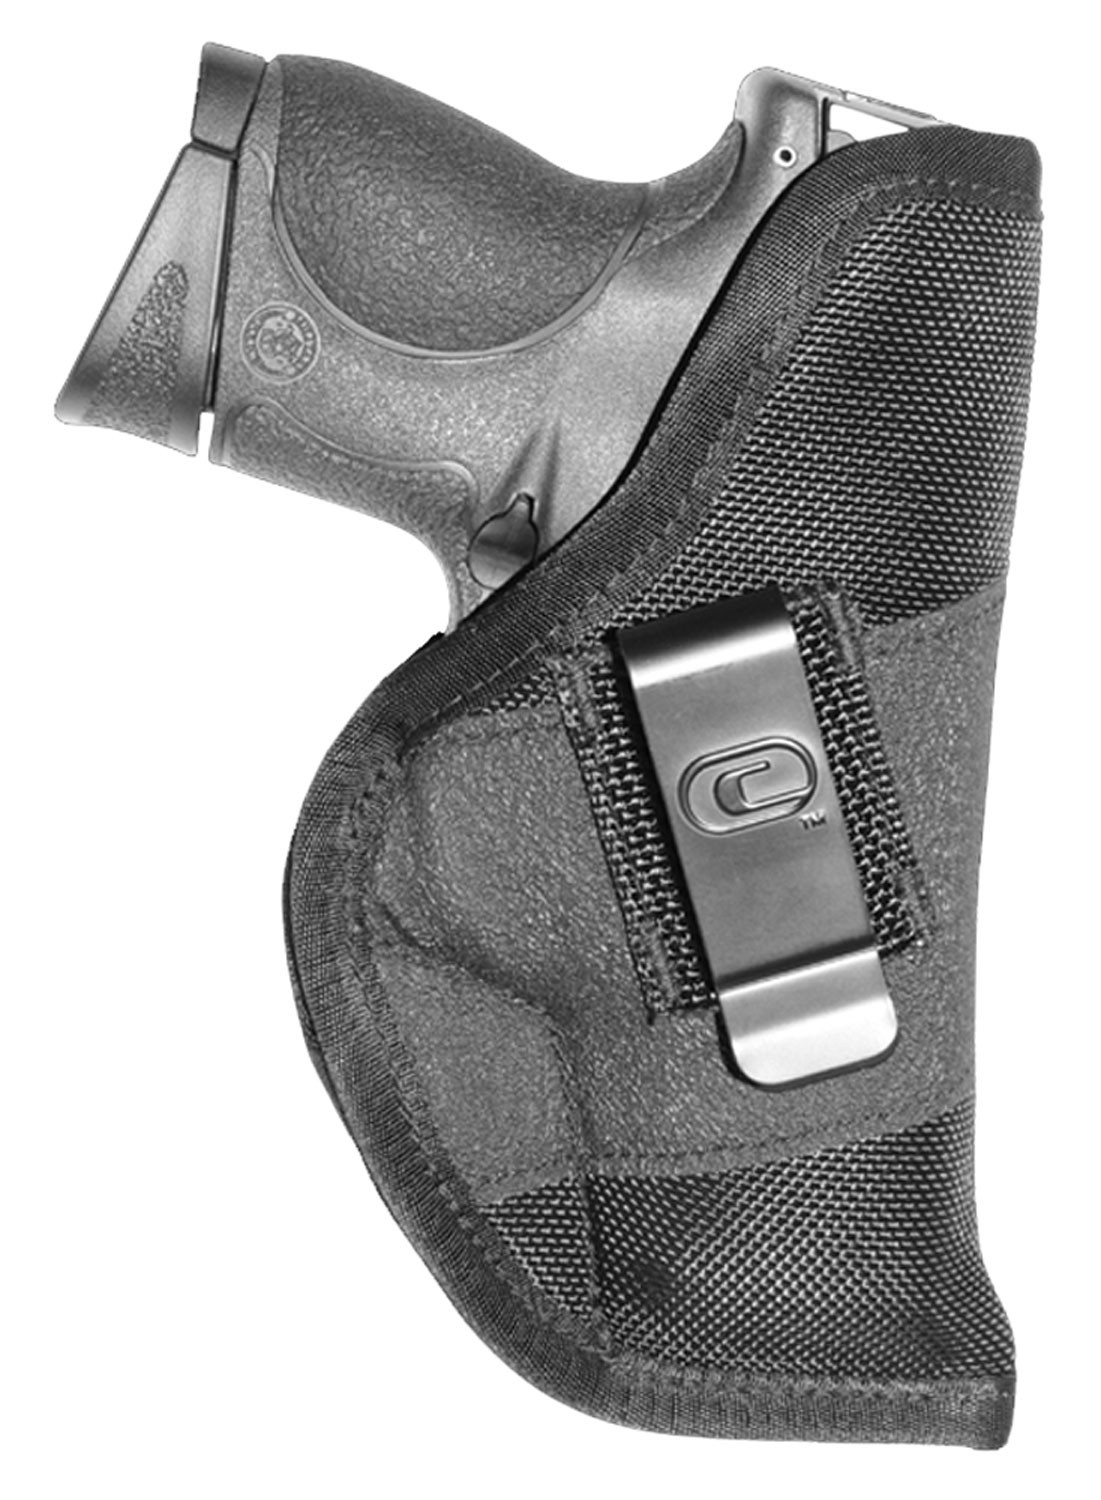 Crossfire CRFGRPCLPSA1M1 Clip-On OWB 1in.-1.5in. Micro 1680D Ballistic Nylon Black